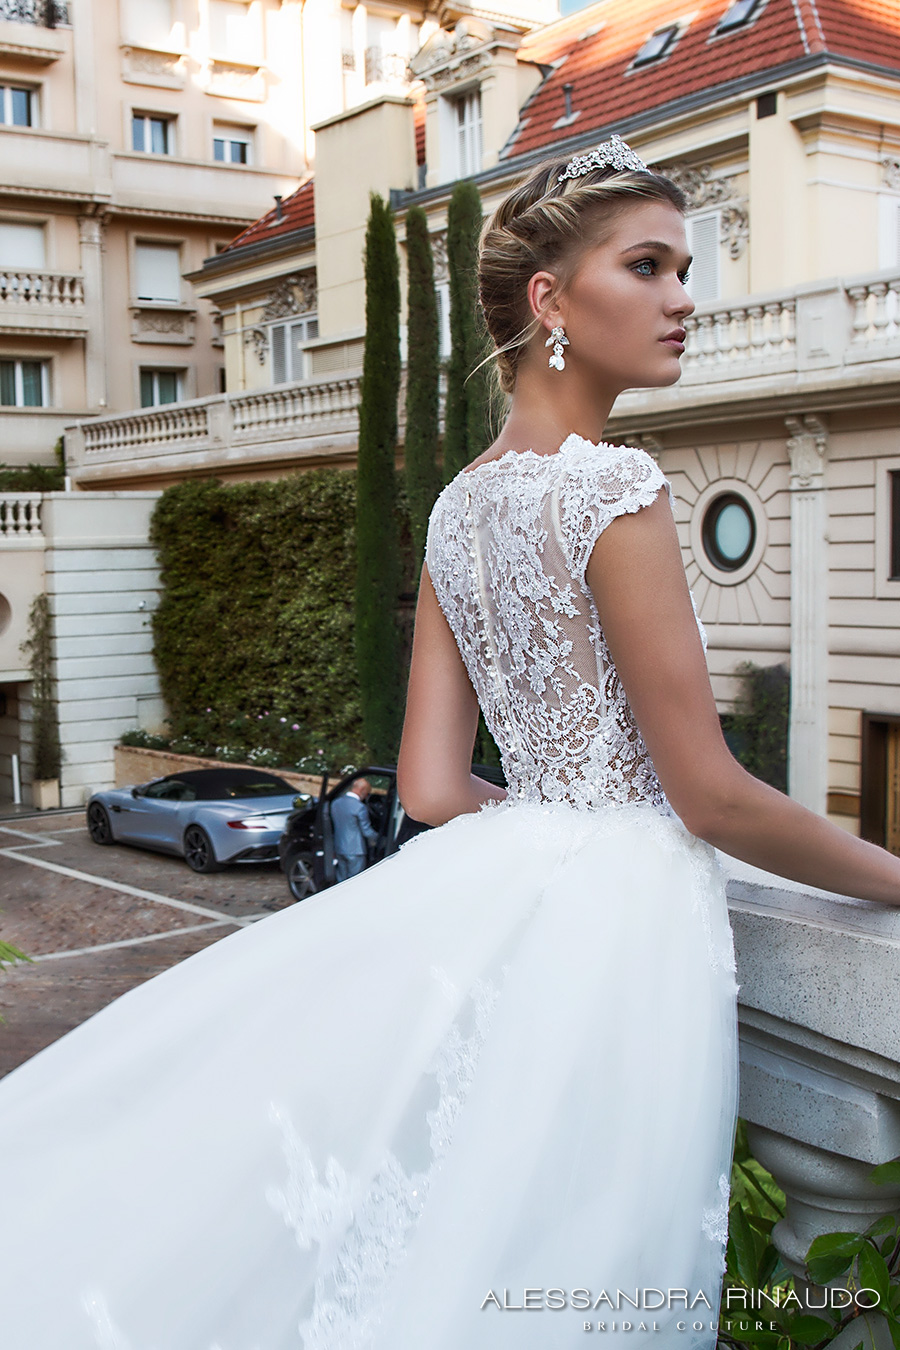 alessandra rinaudo 2017 bridal cap sleeves boat neckline lace embellished bodice romantic sheath wedding dress ball gown a  line train lace back long train (bibi) zbv